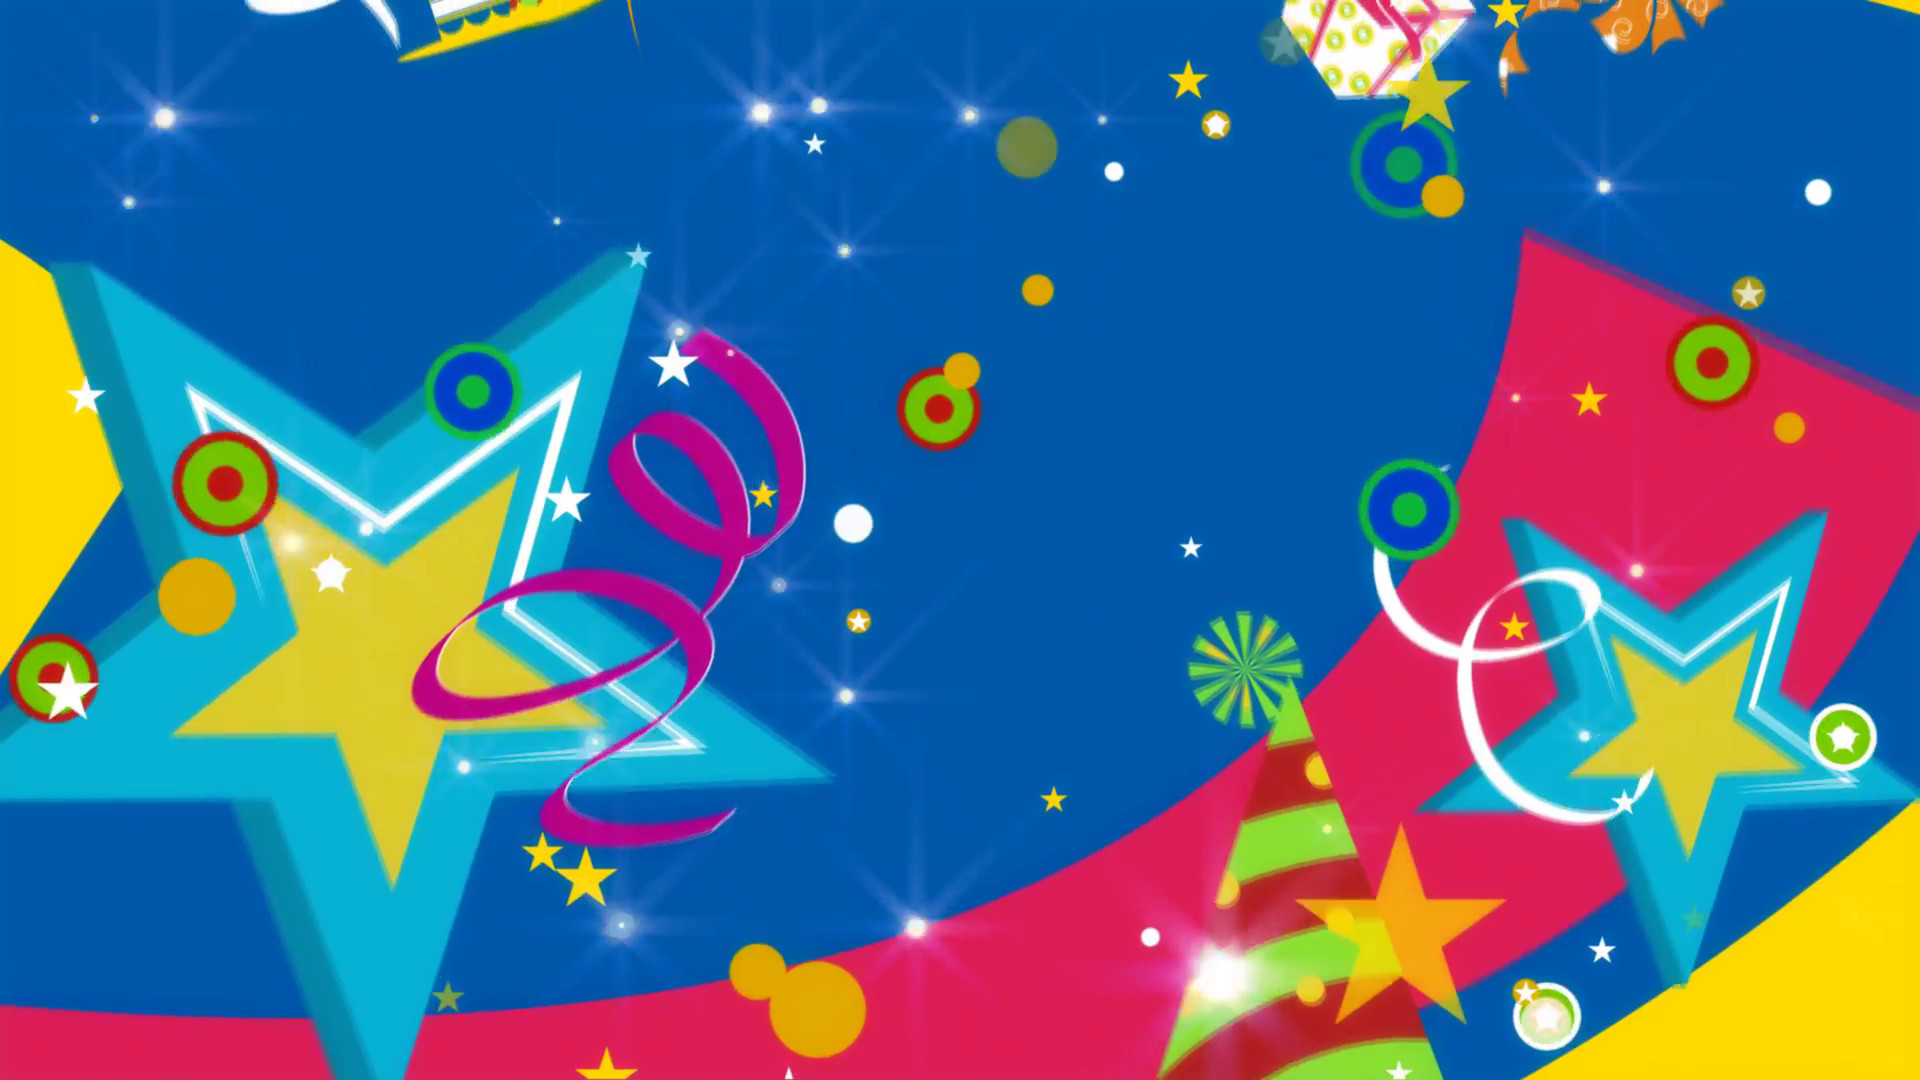 880561 widescreen happy birthday background pictures 1920x1080 laptop